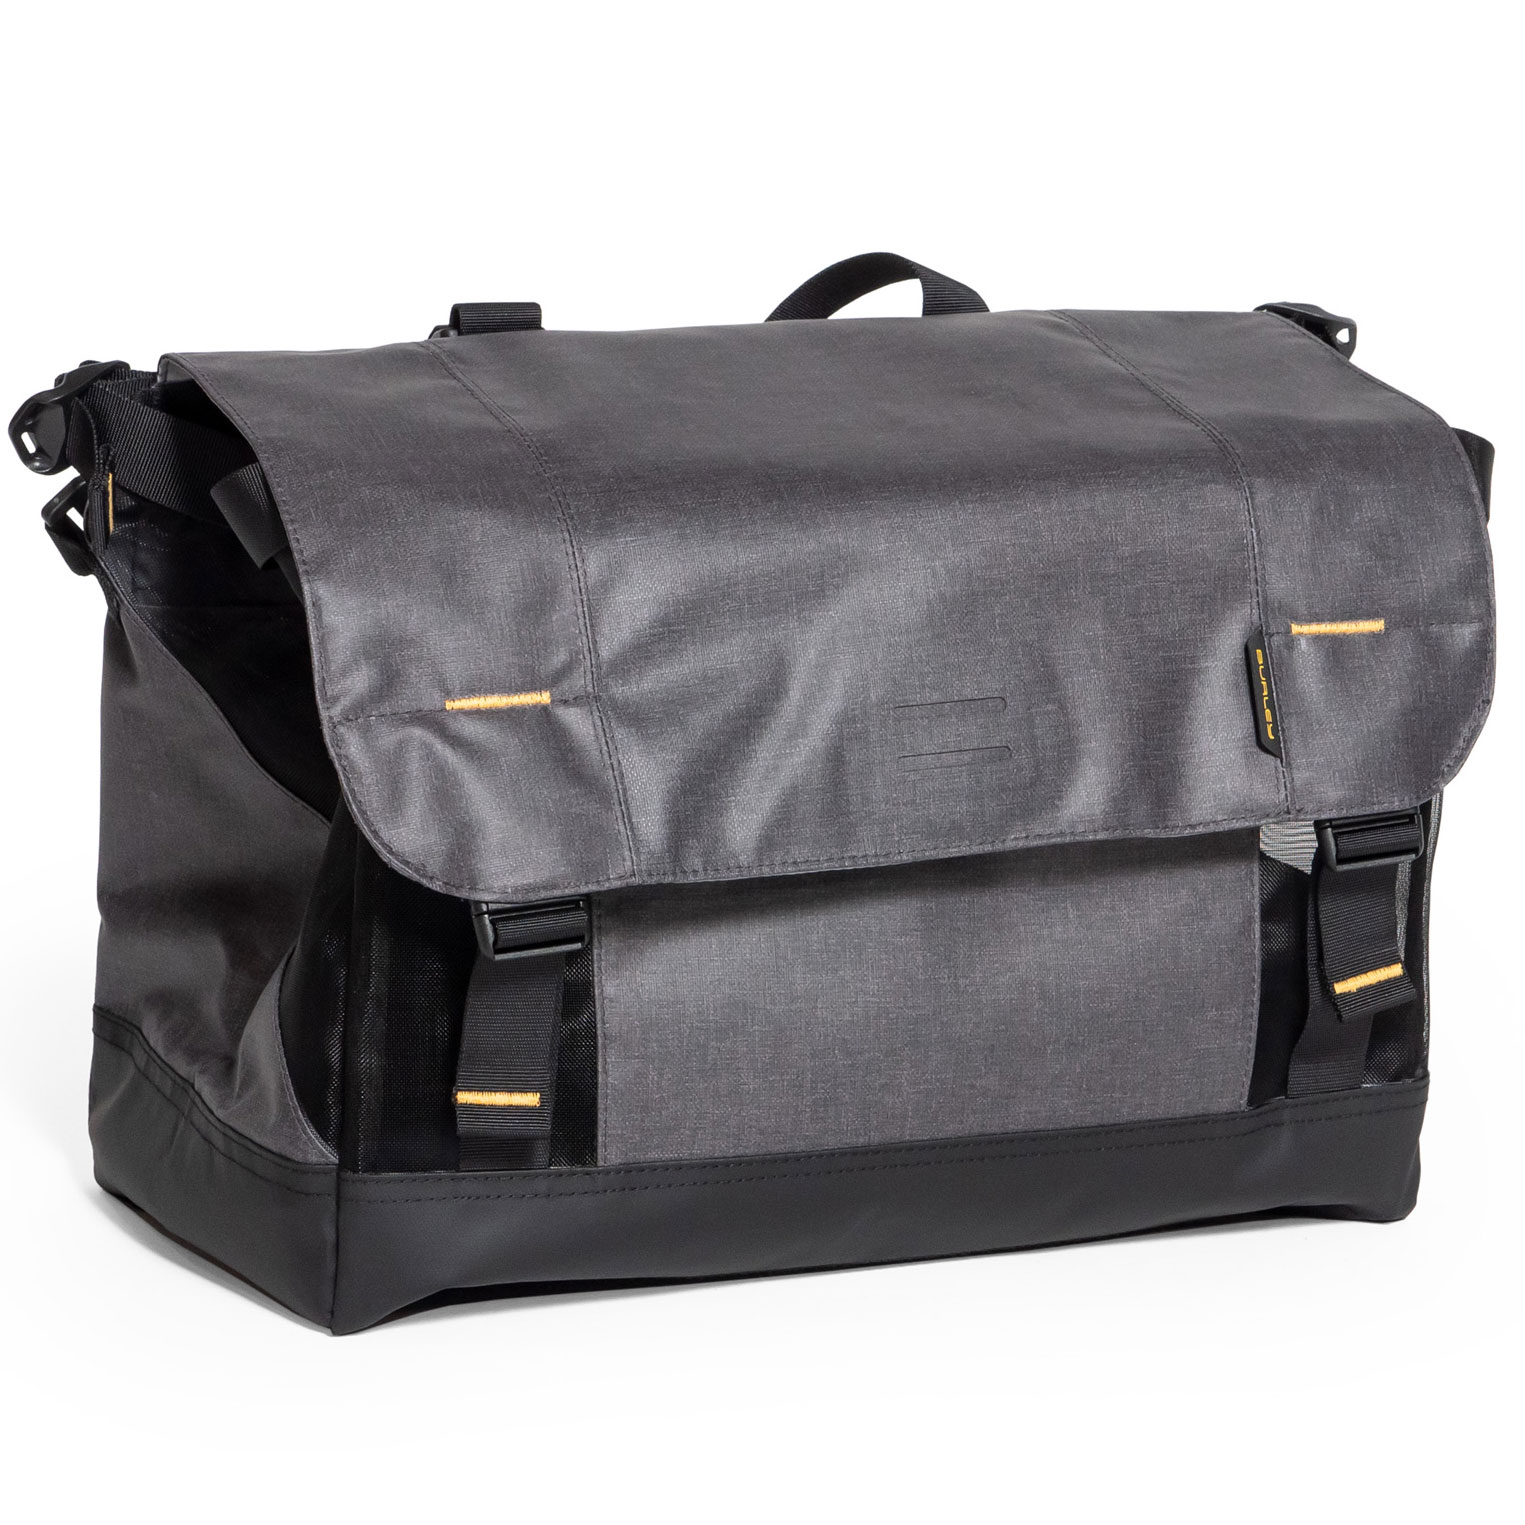 Picture of Burley Travoy Upper Market Bag - 22L